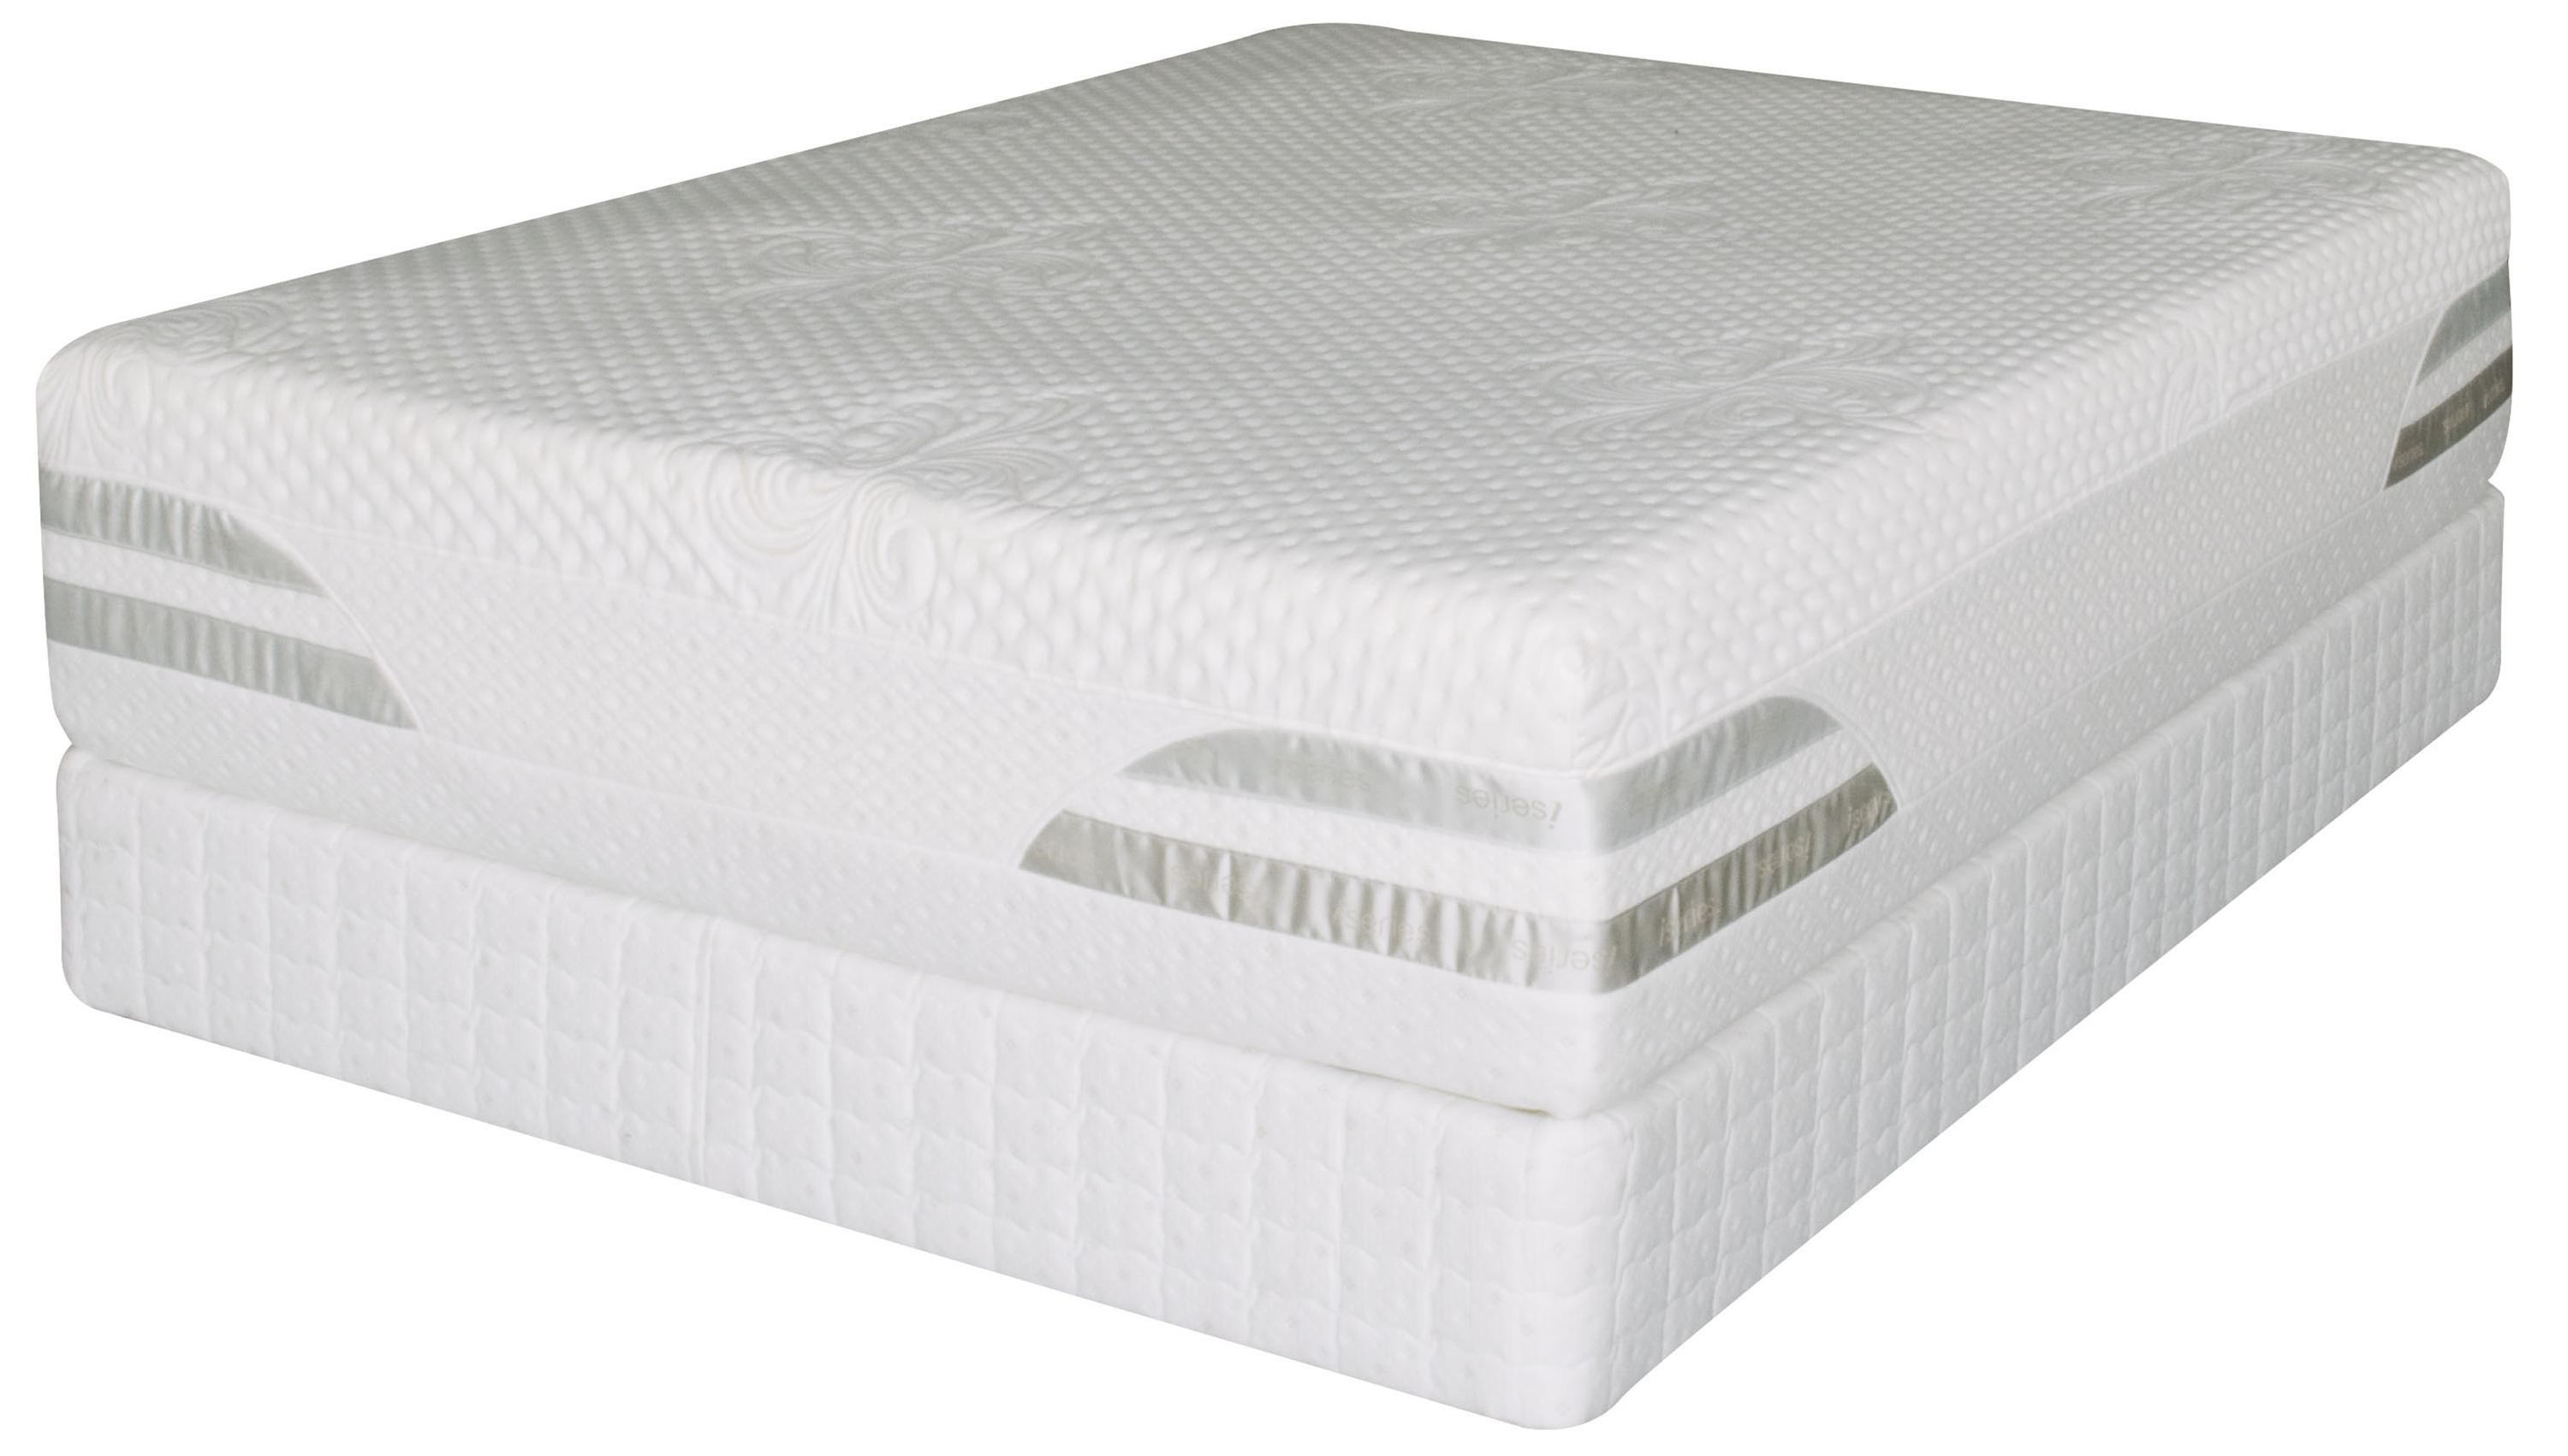 Serta Trump Home ISeries Valena Full Zippered Cover Mattress